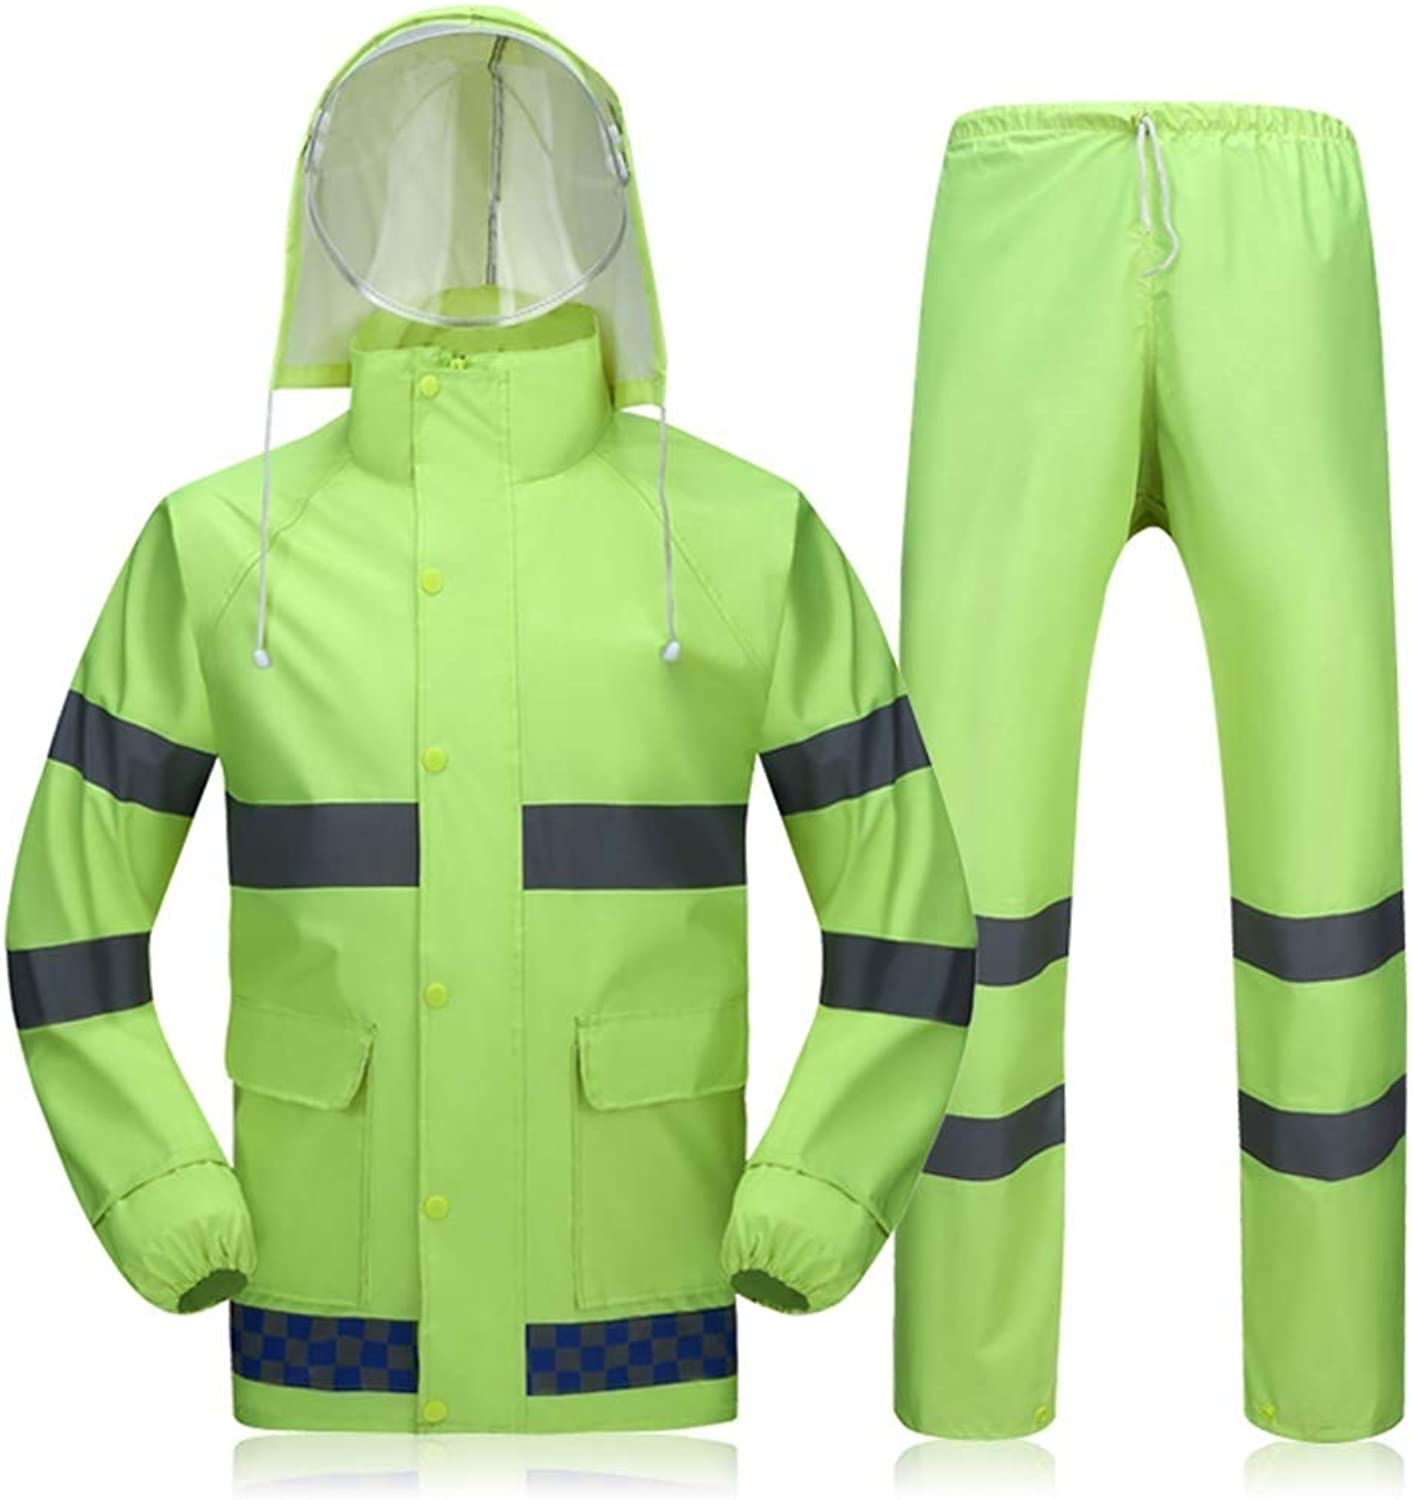 Adult Reflective Split Raincoat Outdoor Hooded Raincoat Double Mesh Removable Double Cap Fluorescent Green Hunting Mountaineering (Size   XXXL)